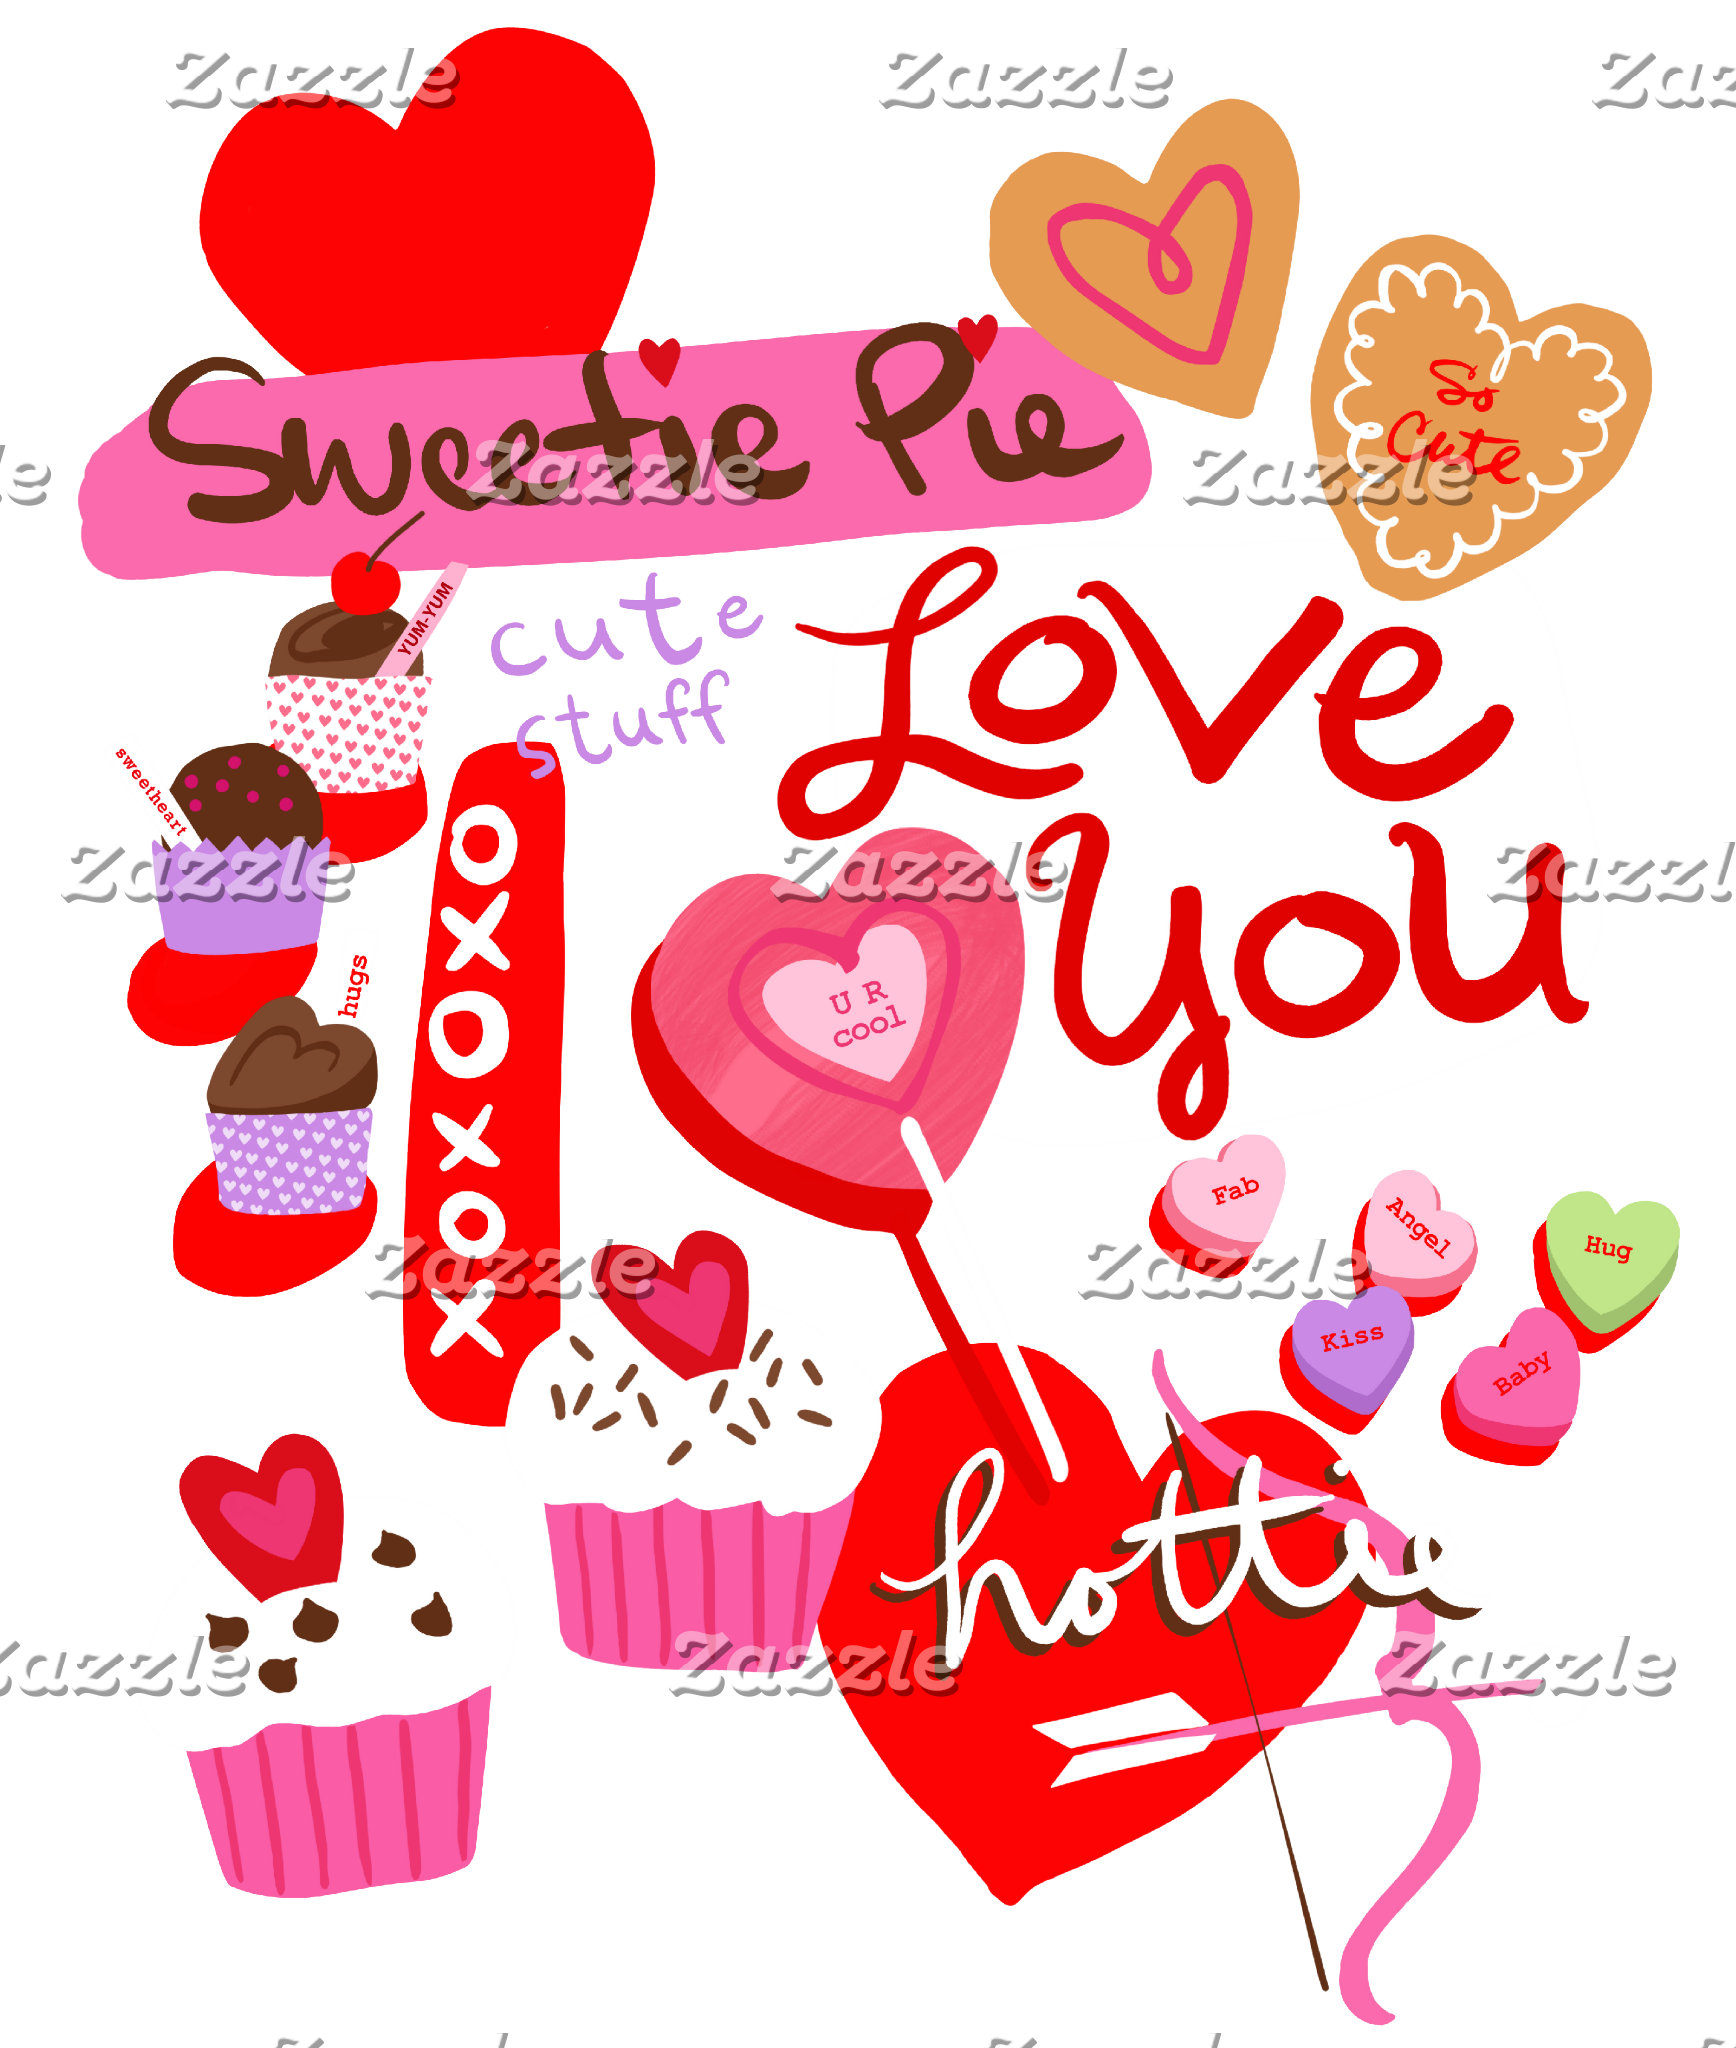 Sweetie Pie Hearts and Treats